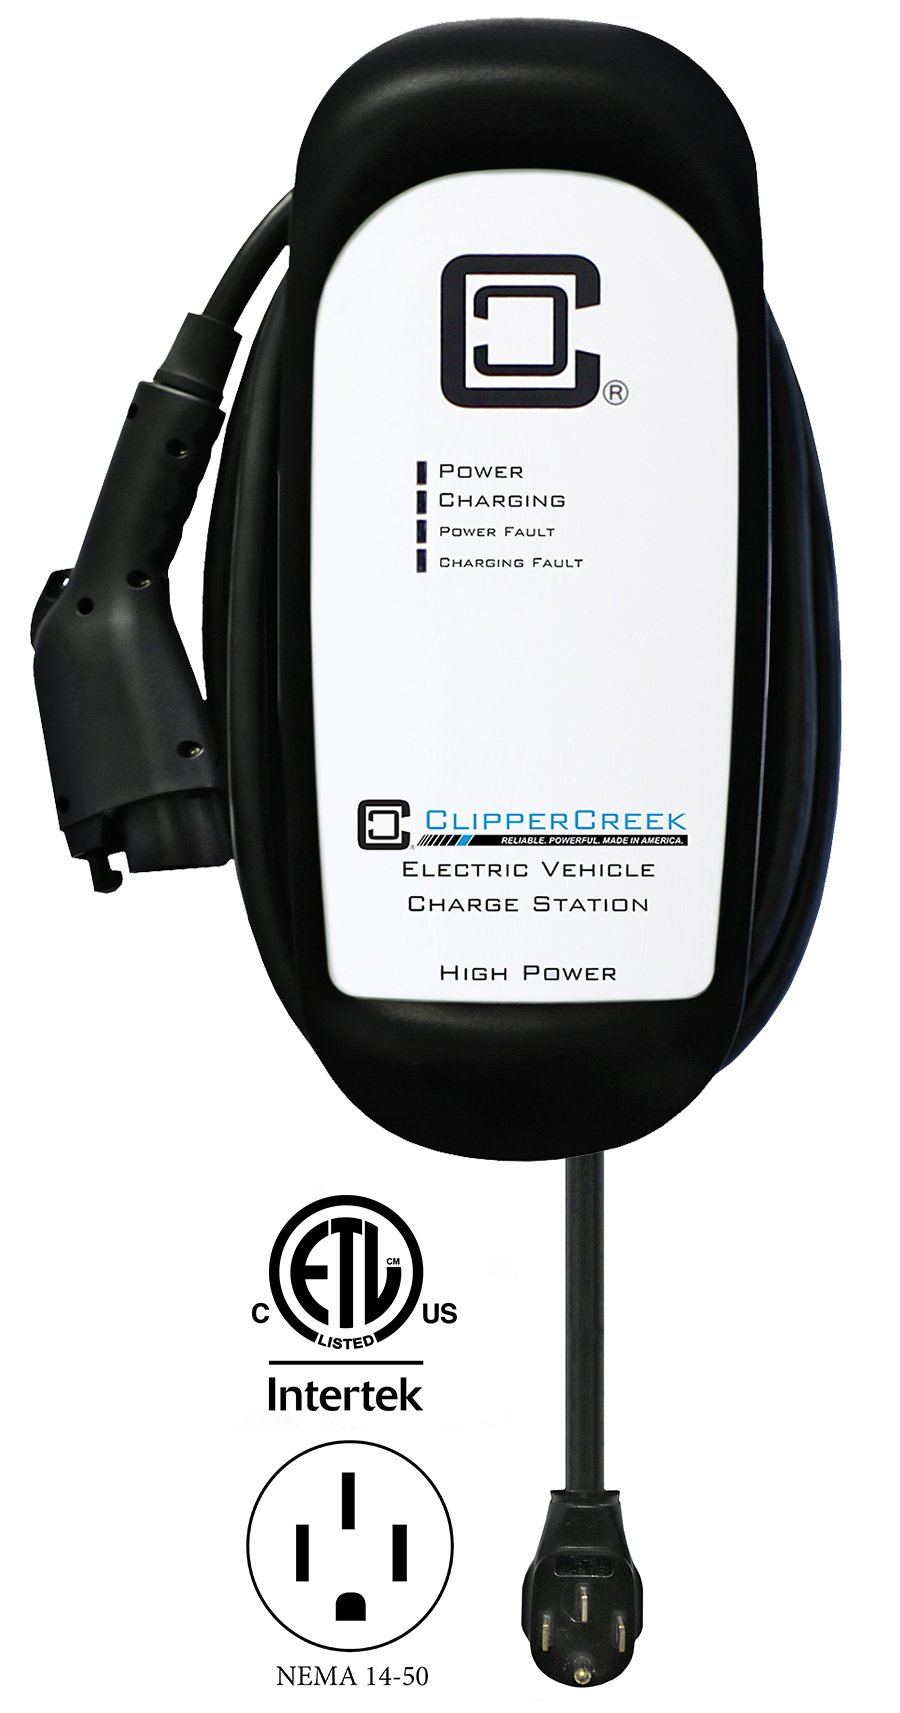 ClipperCreek HCS-40P, 240V, 32A, EV Charging Station, with 14-50 Plug, 25 ft Cable, Safety Certified, Made in America